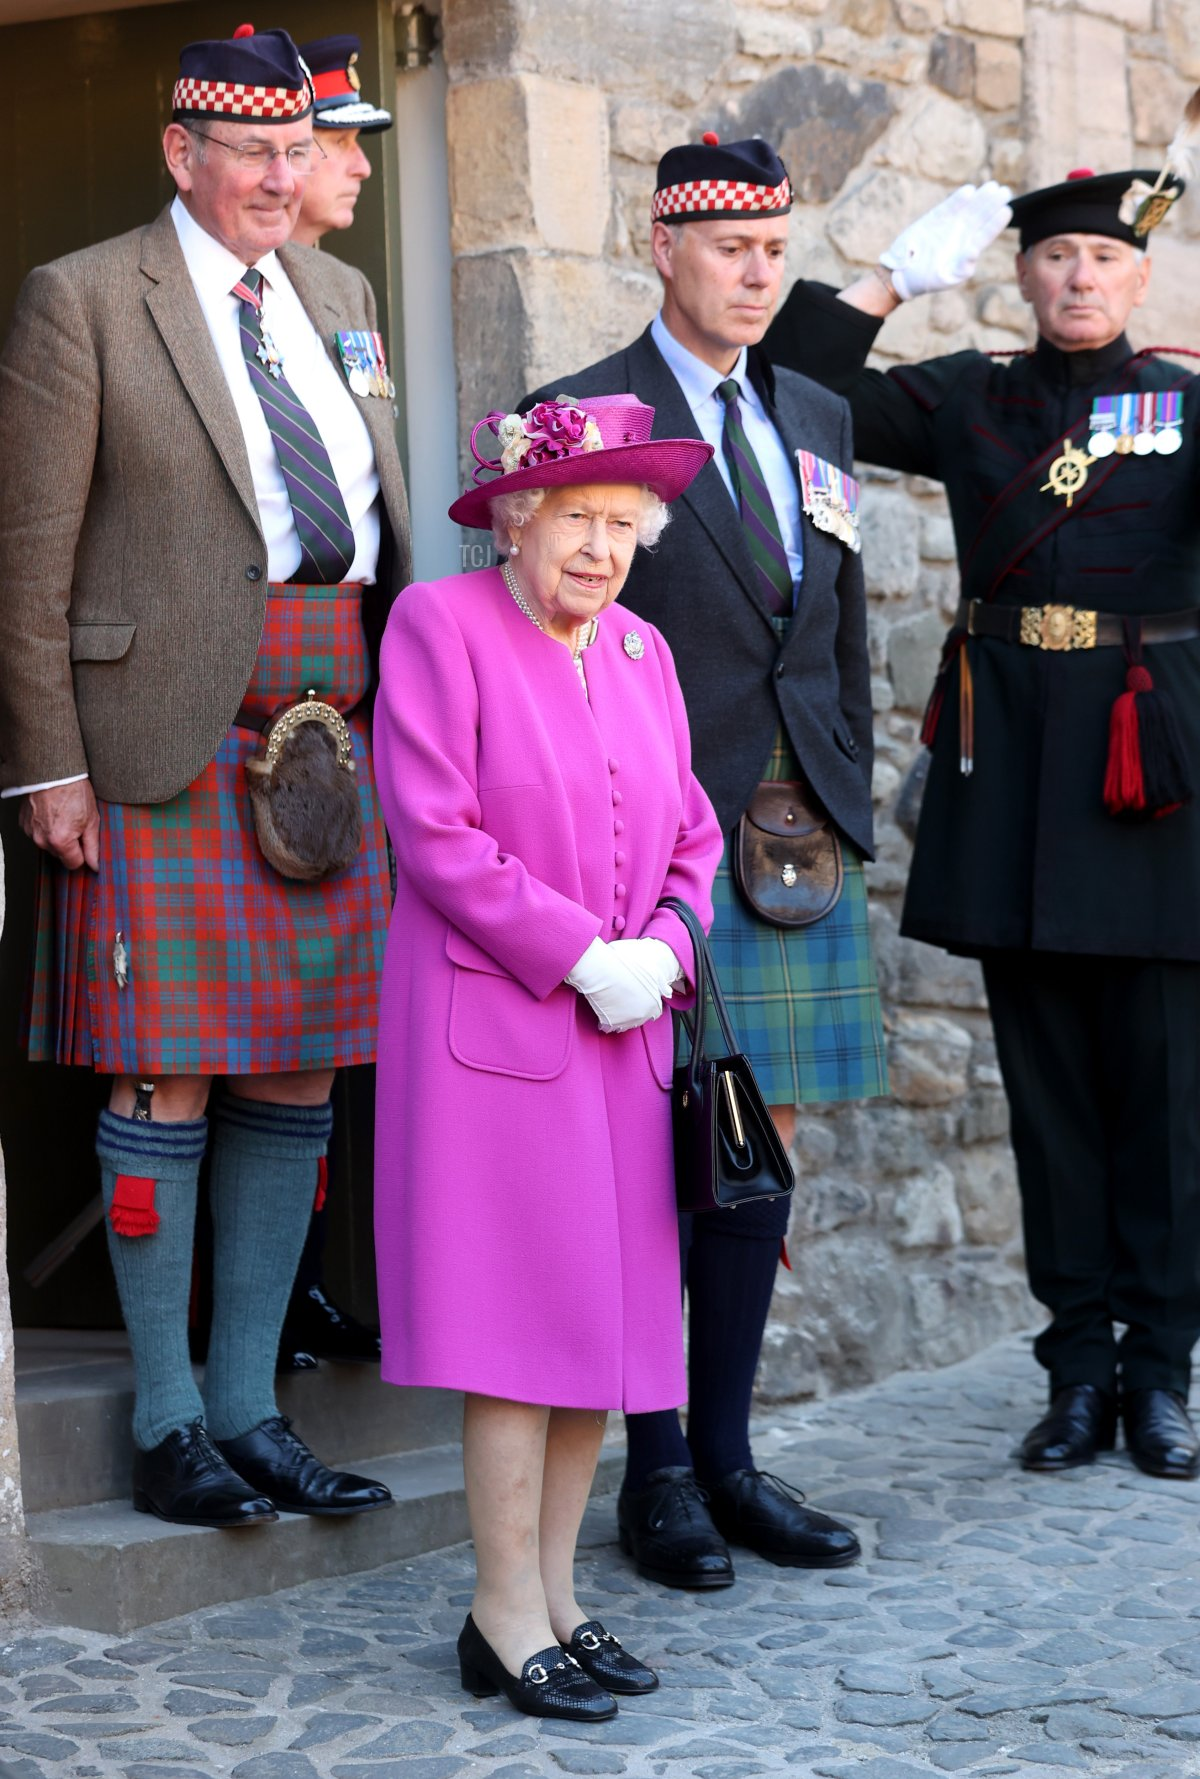 Queen Elizabeth II opens the Argyll and Sutherland Highlanders' Museum during a visit to Stirling Castle on June 29, 2021 in Stirling, Scotland